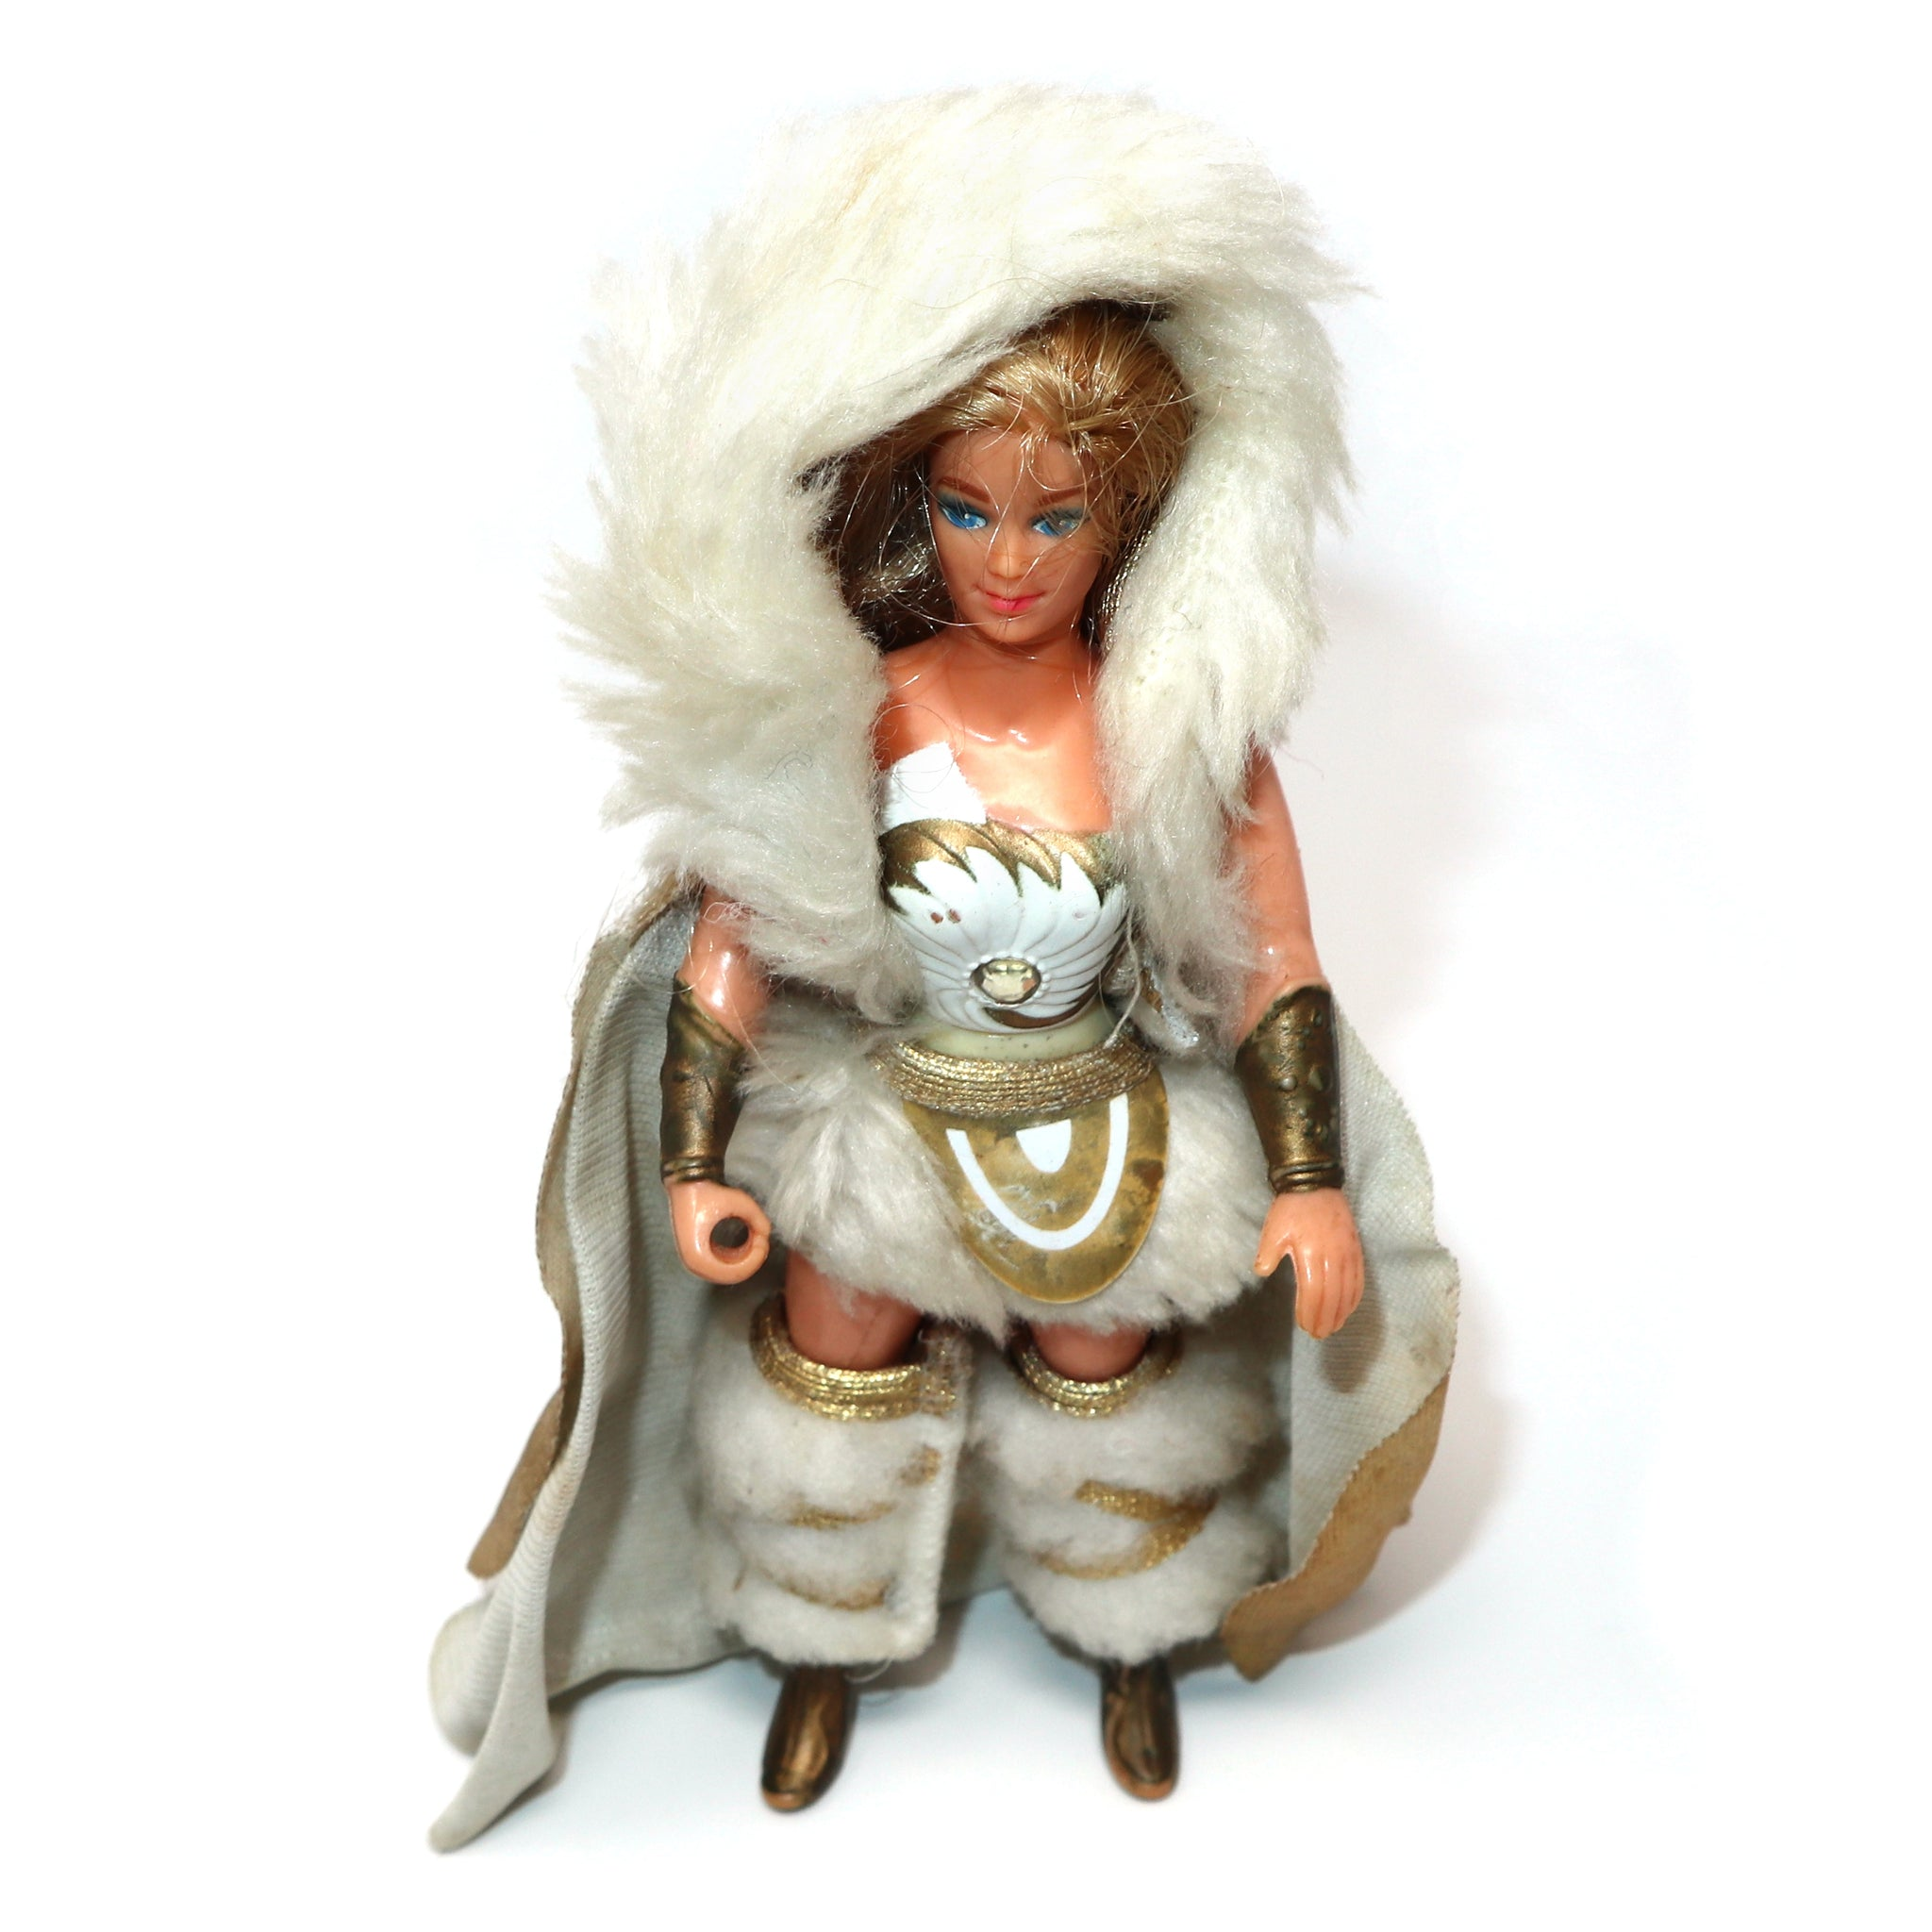 Vintage 1984 80s Mattel She-Ra (Shera) Princess of Power Action Figure + Frosty Fur Fantastic Fashions Outfit Rare